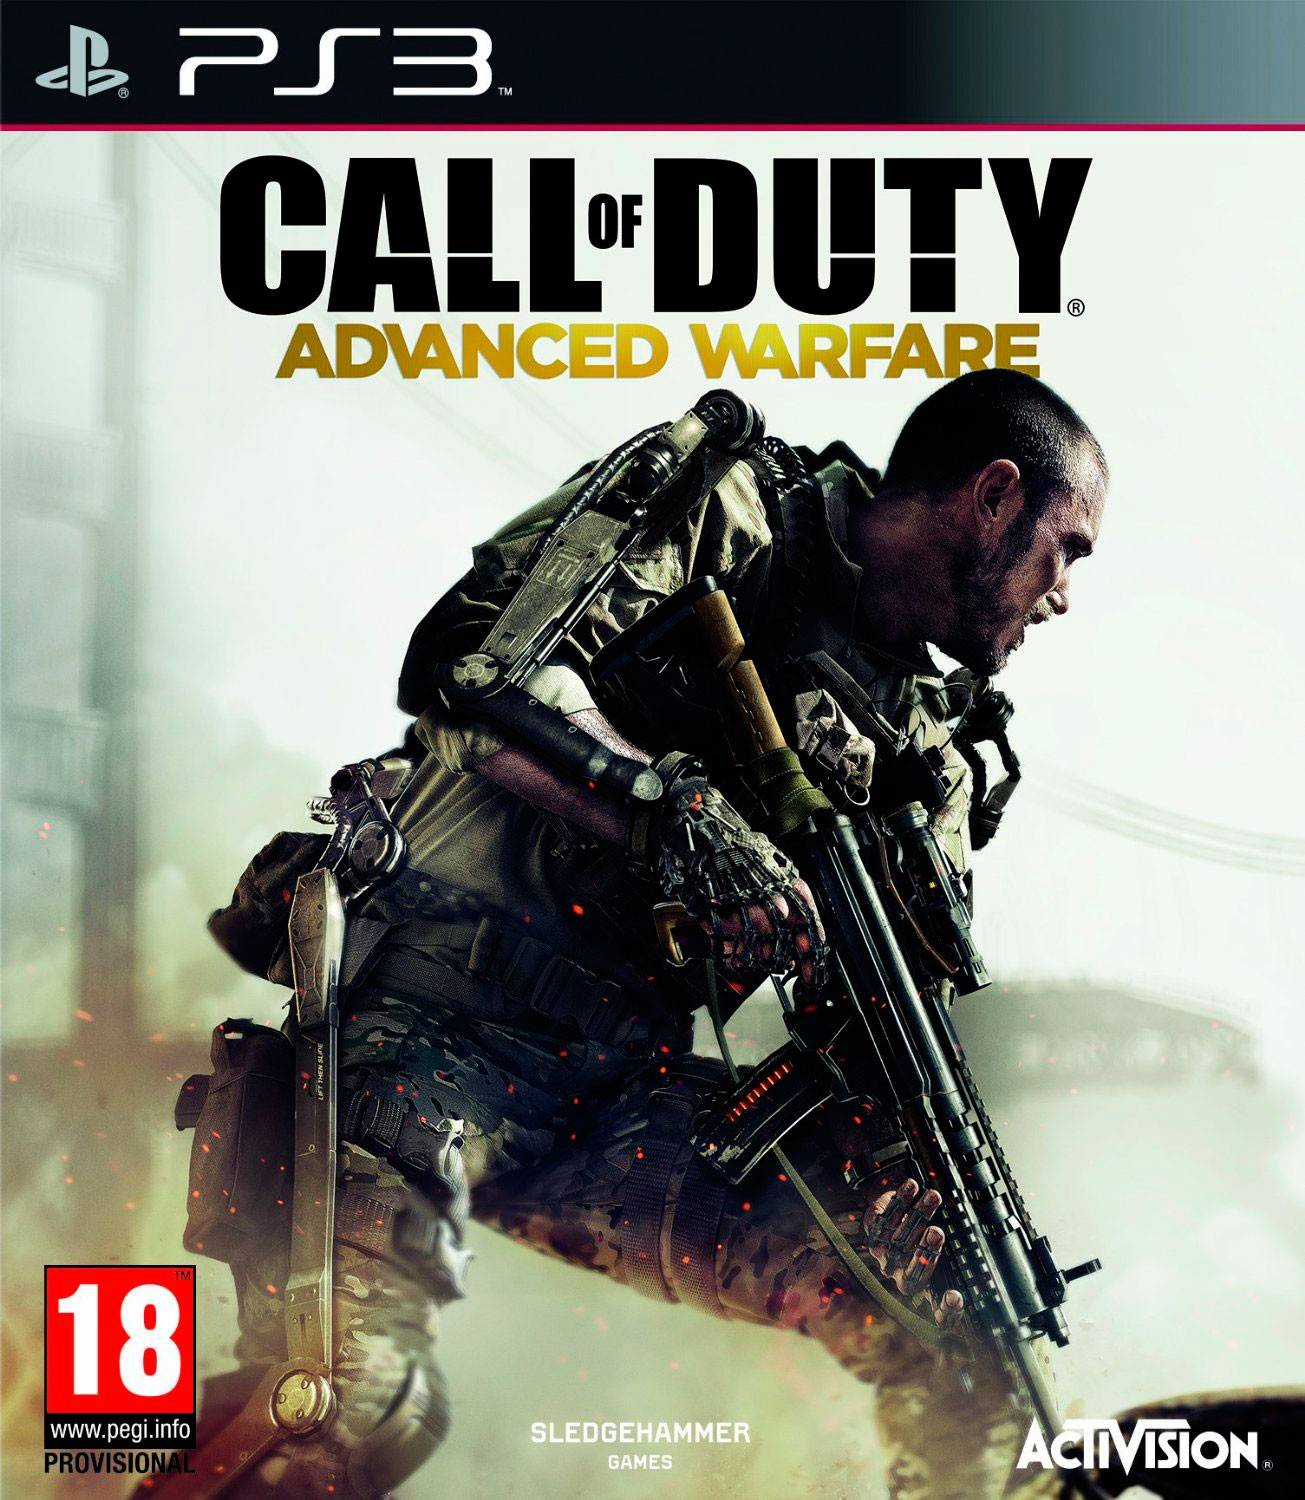 Activision Call of Duty: Advanced Warfare (PS3)